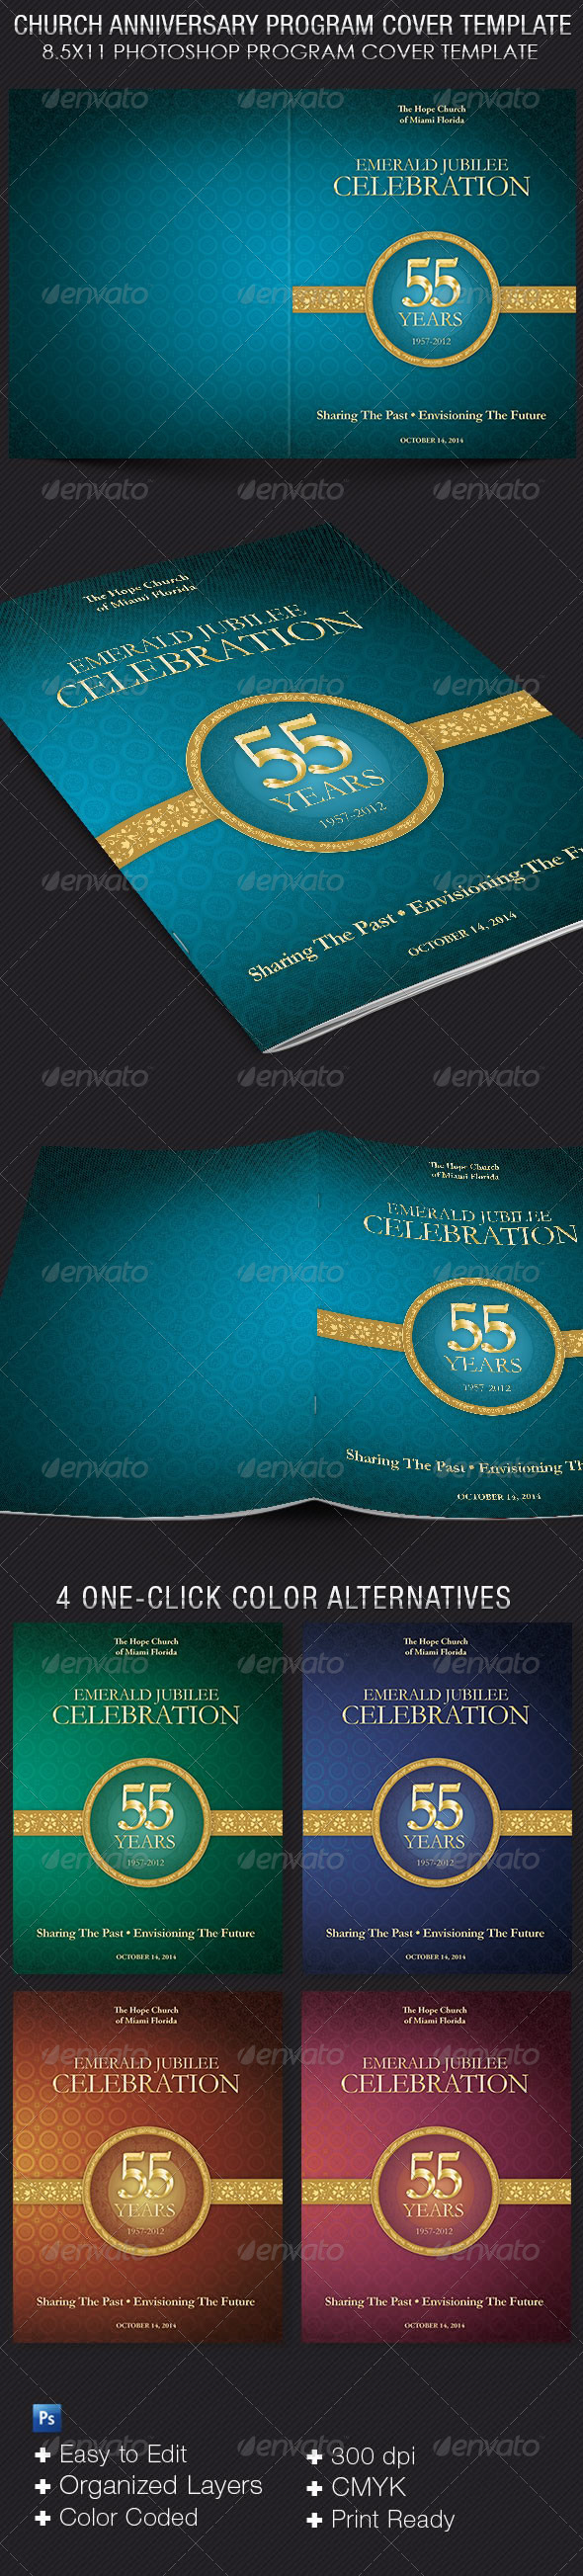 GraphicRiver Church Anniversary Program Cover Template 7747392